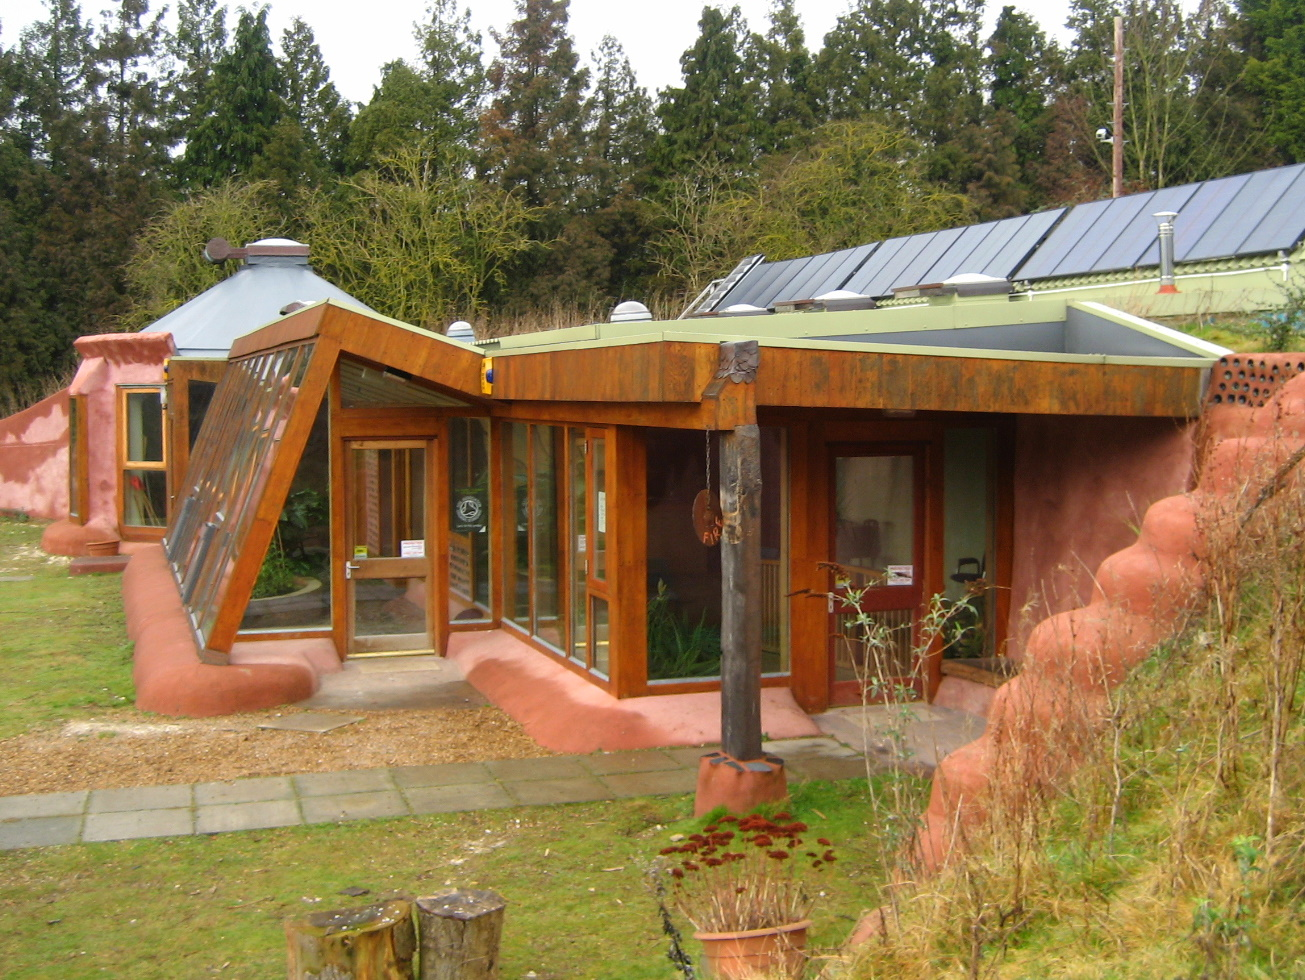 Earthship wikidwelling - Earth home designs ...